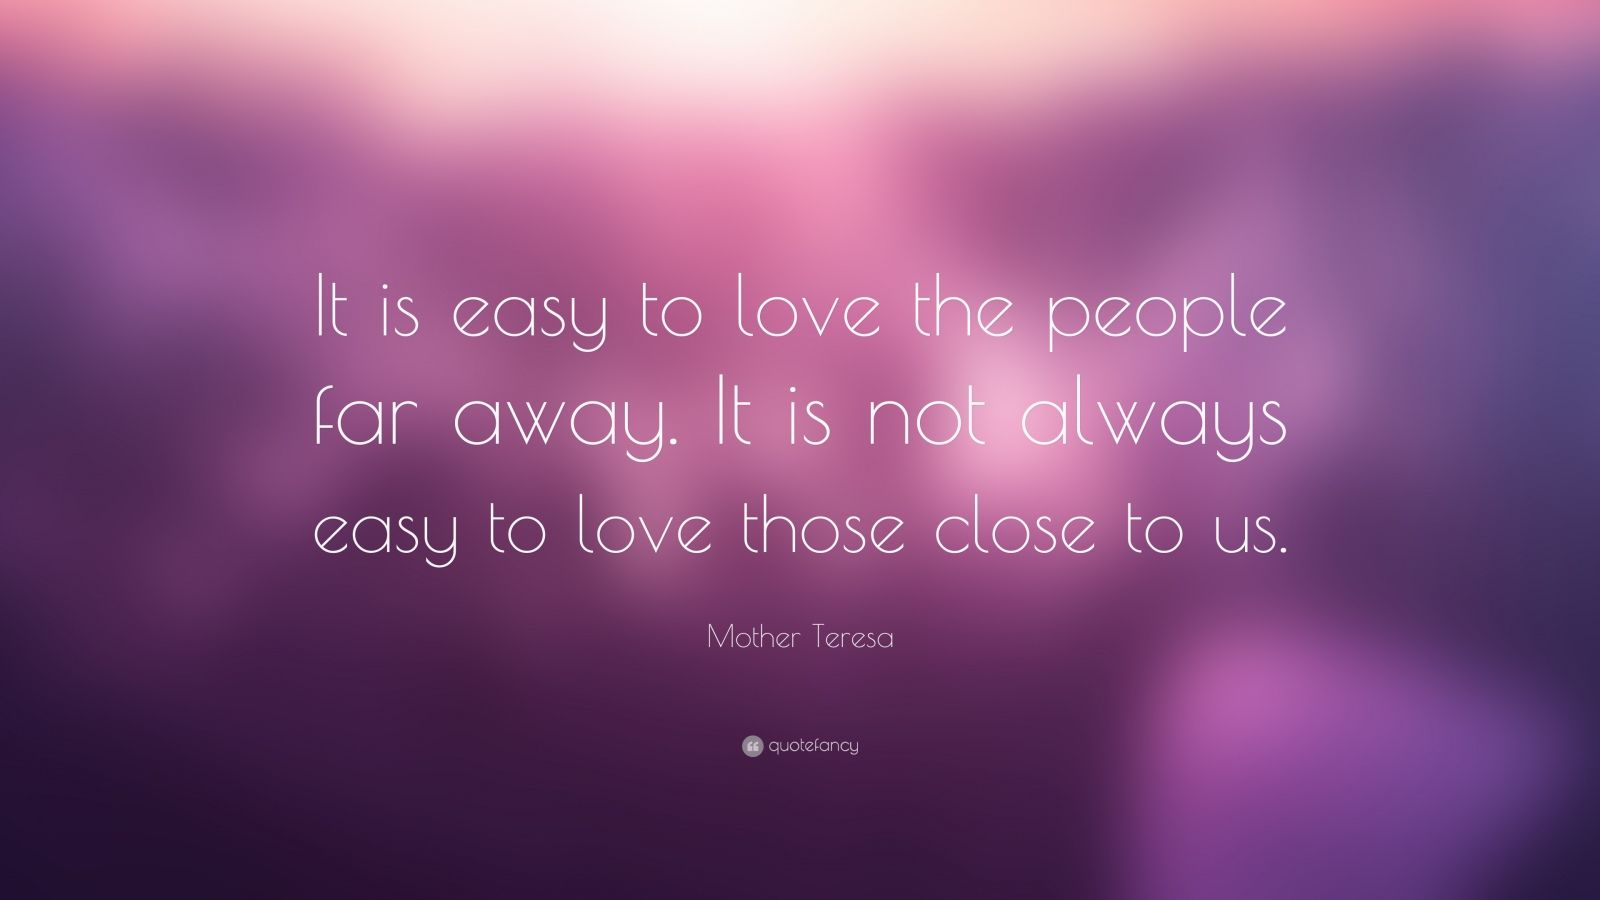 """Mother Teresa Quote: """"It is easy to love the people far away. It is not always easy to love those close to us."""""""